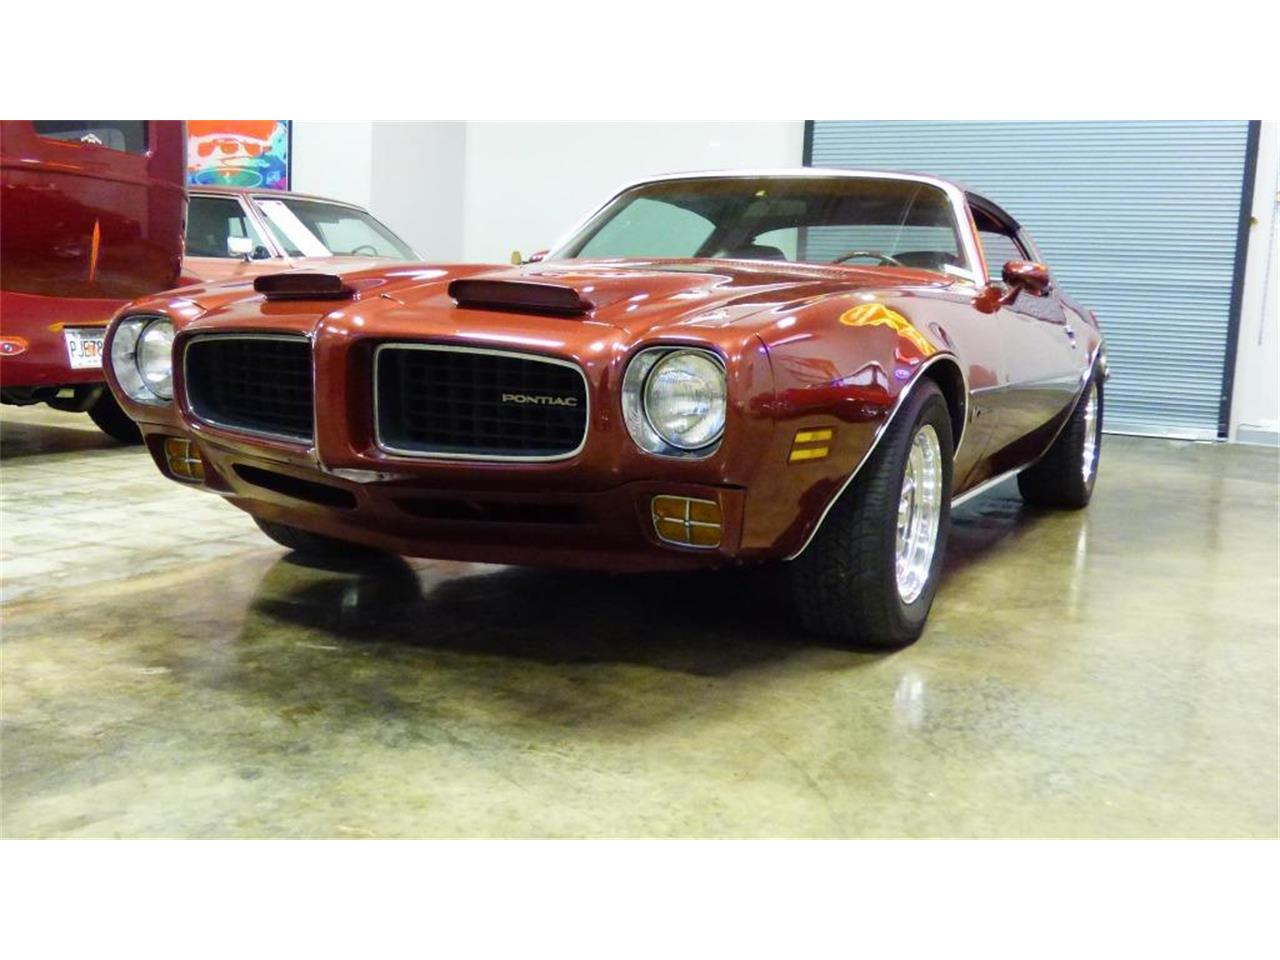 Large Picture of '73 Pontiac Firebird Formula Offered by Cruisers Specialty Autos - PZRG